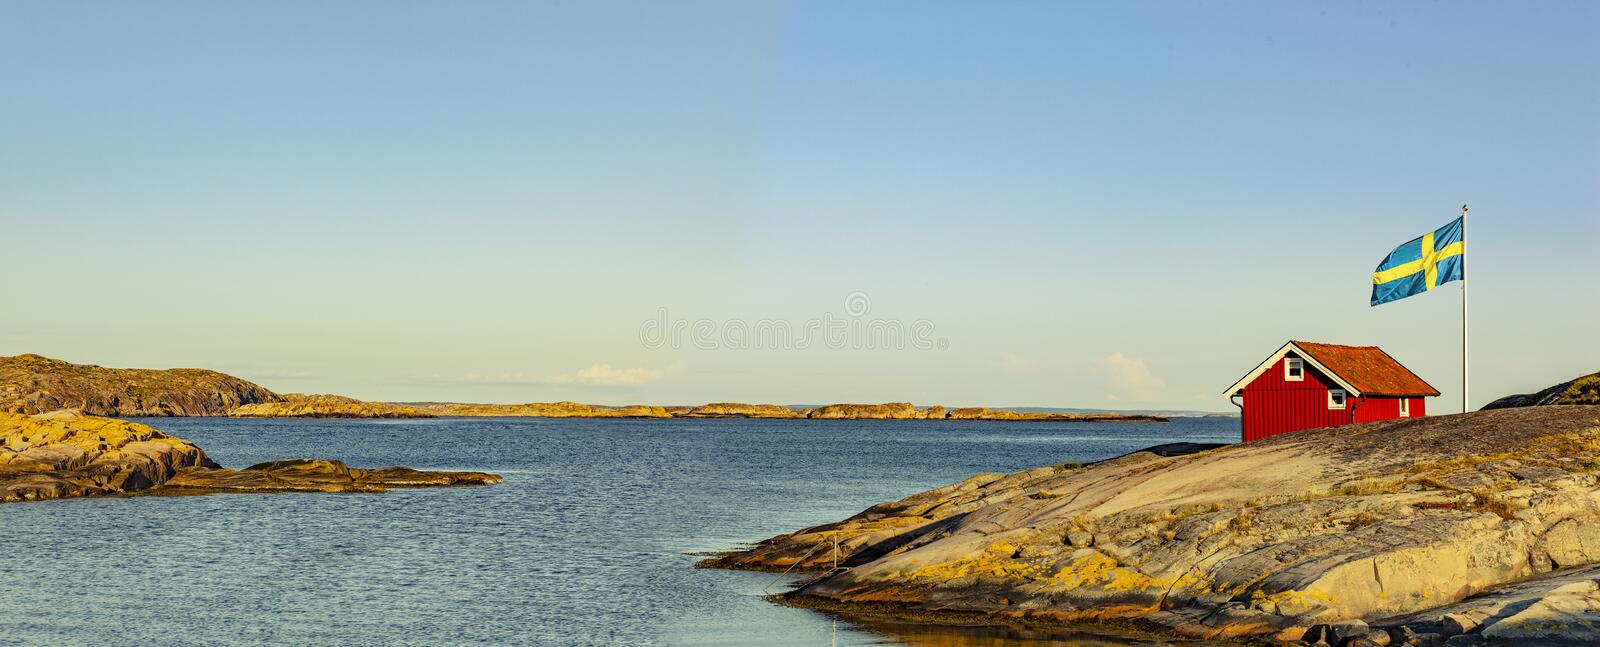 Red house in Sweden at the skerry coast stock photos